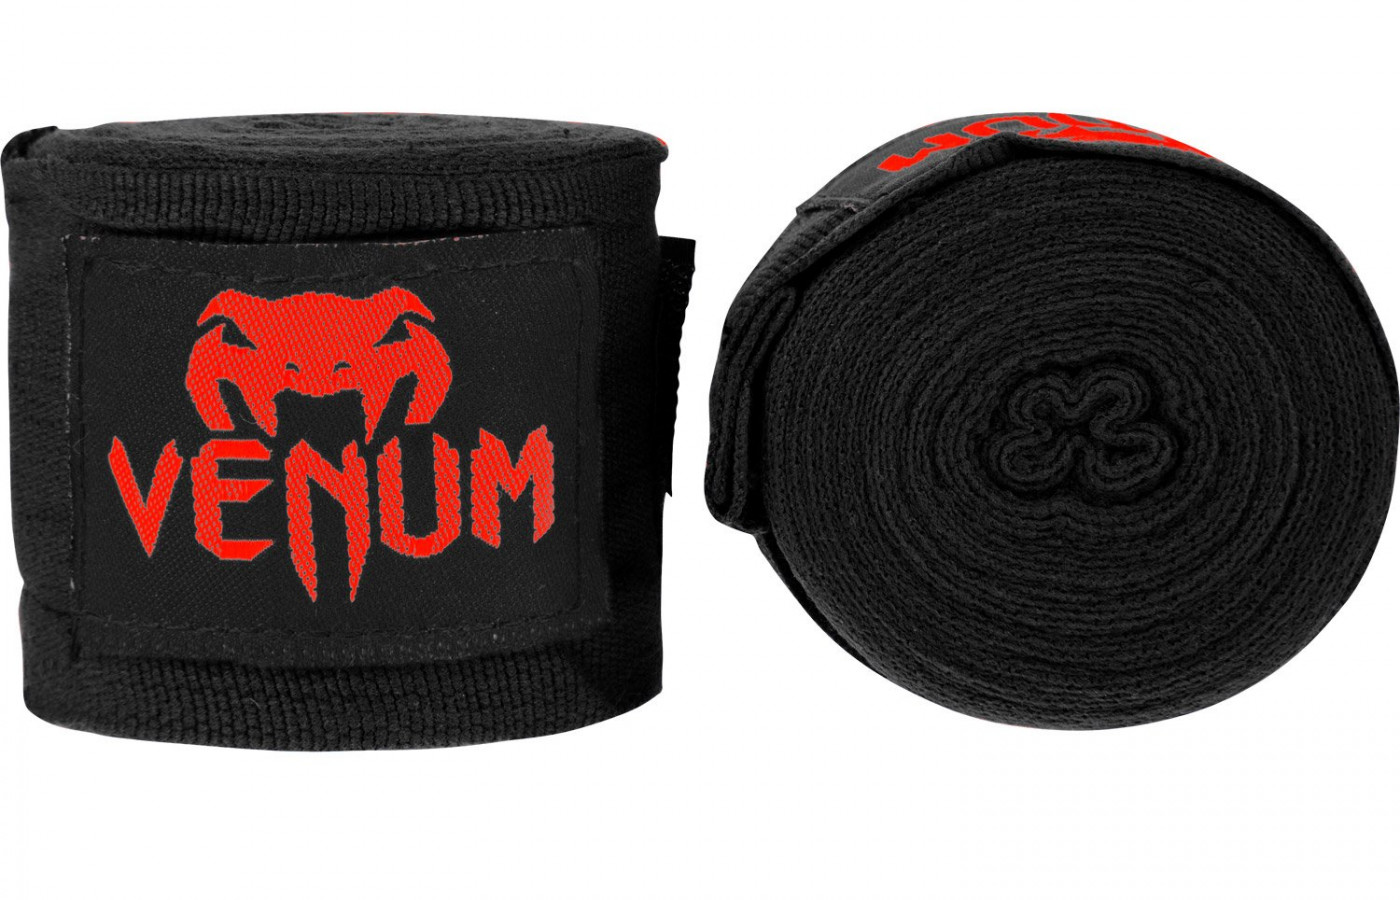 Venum wraps black and red